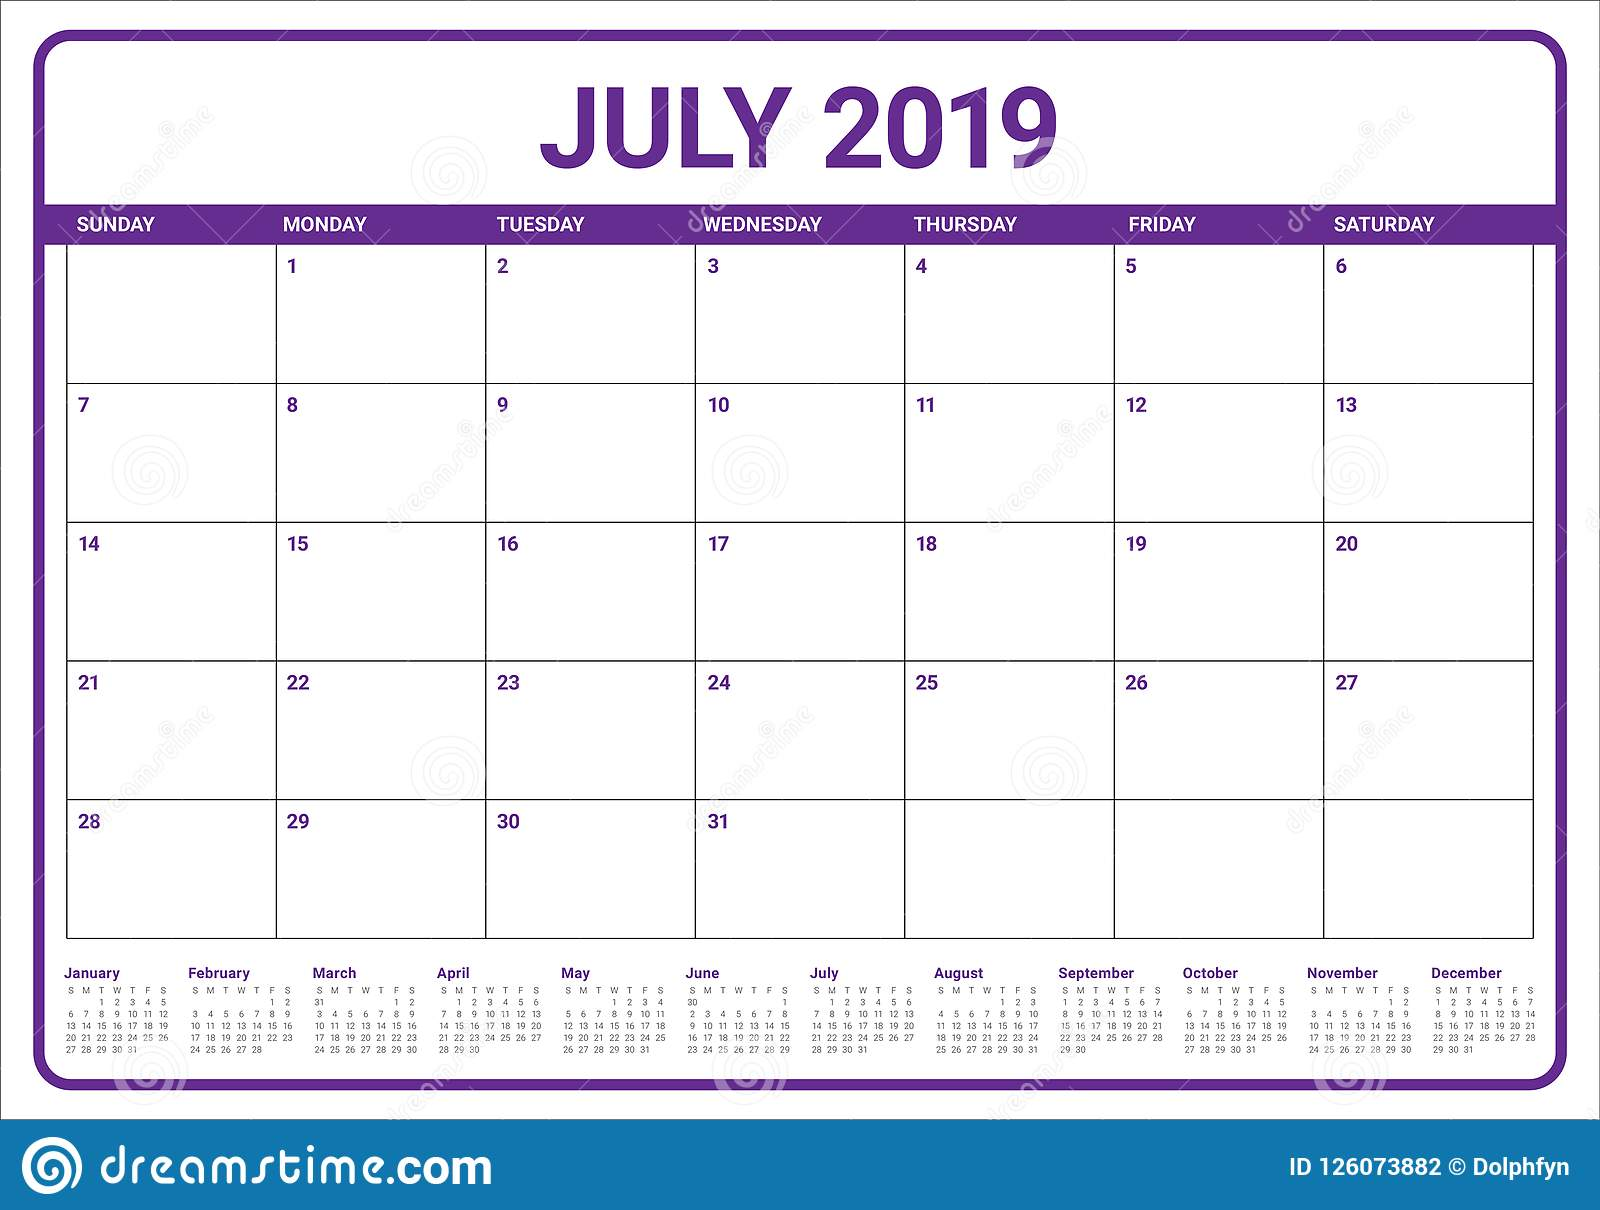 Calendario Julio 2019 Vector.July 2019 Desk Calendar Vector Illustration Stock Vector